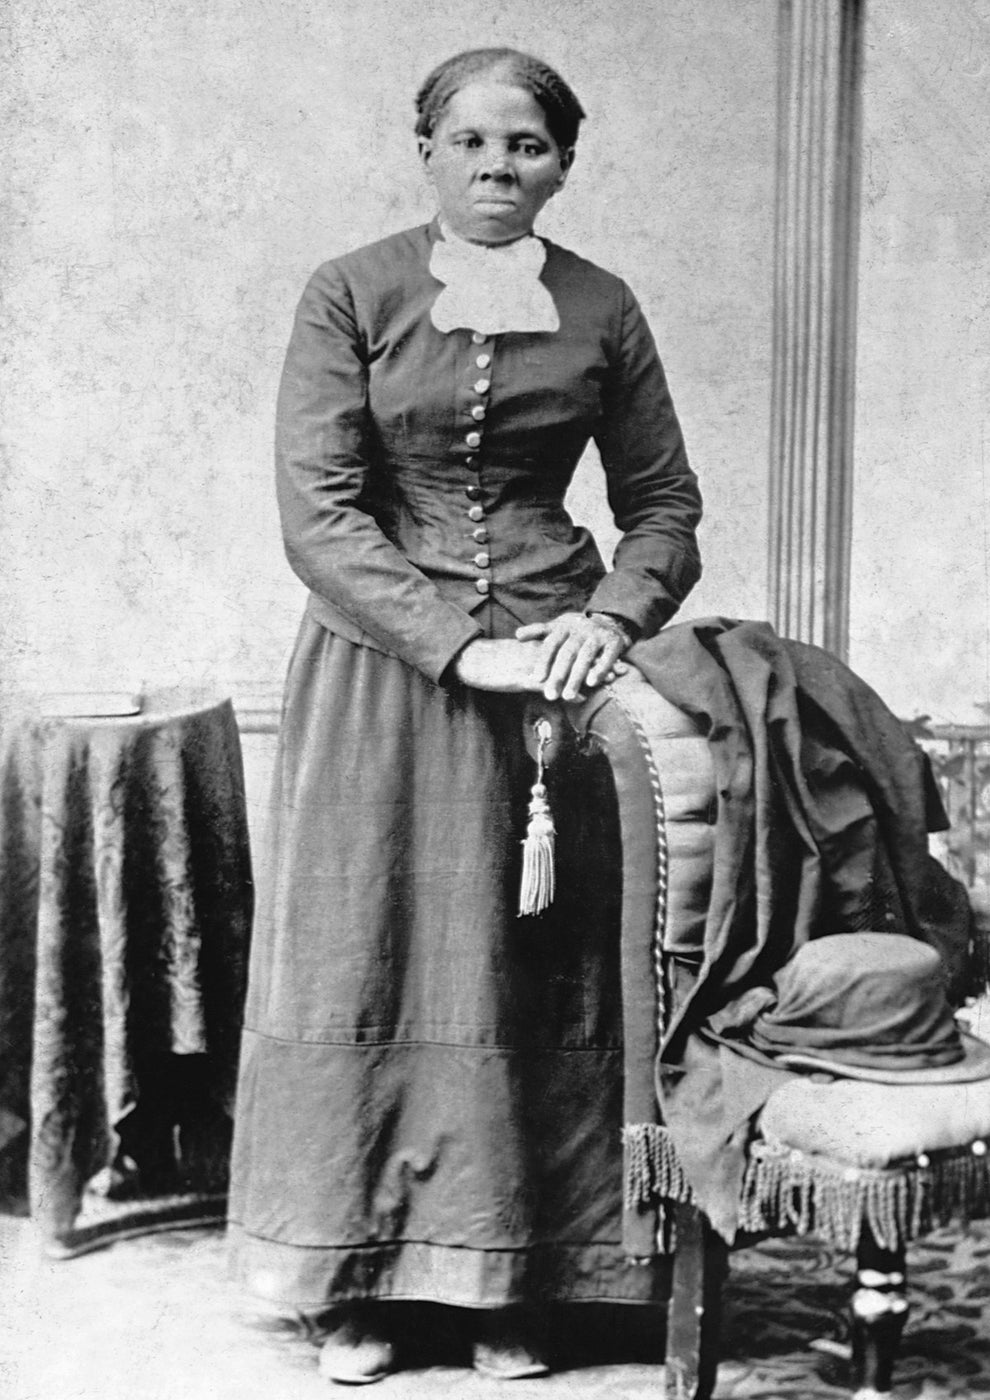 Harriet Tubman, American abolitionist and armed spy for the Union Army during the American Civil War.